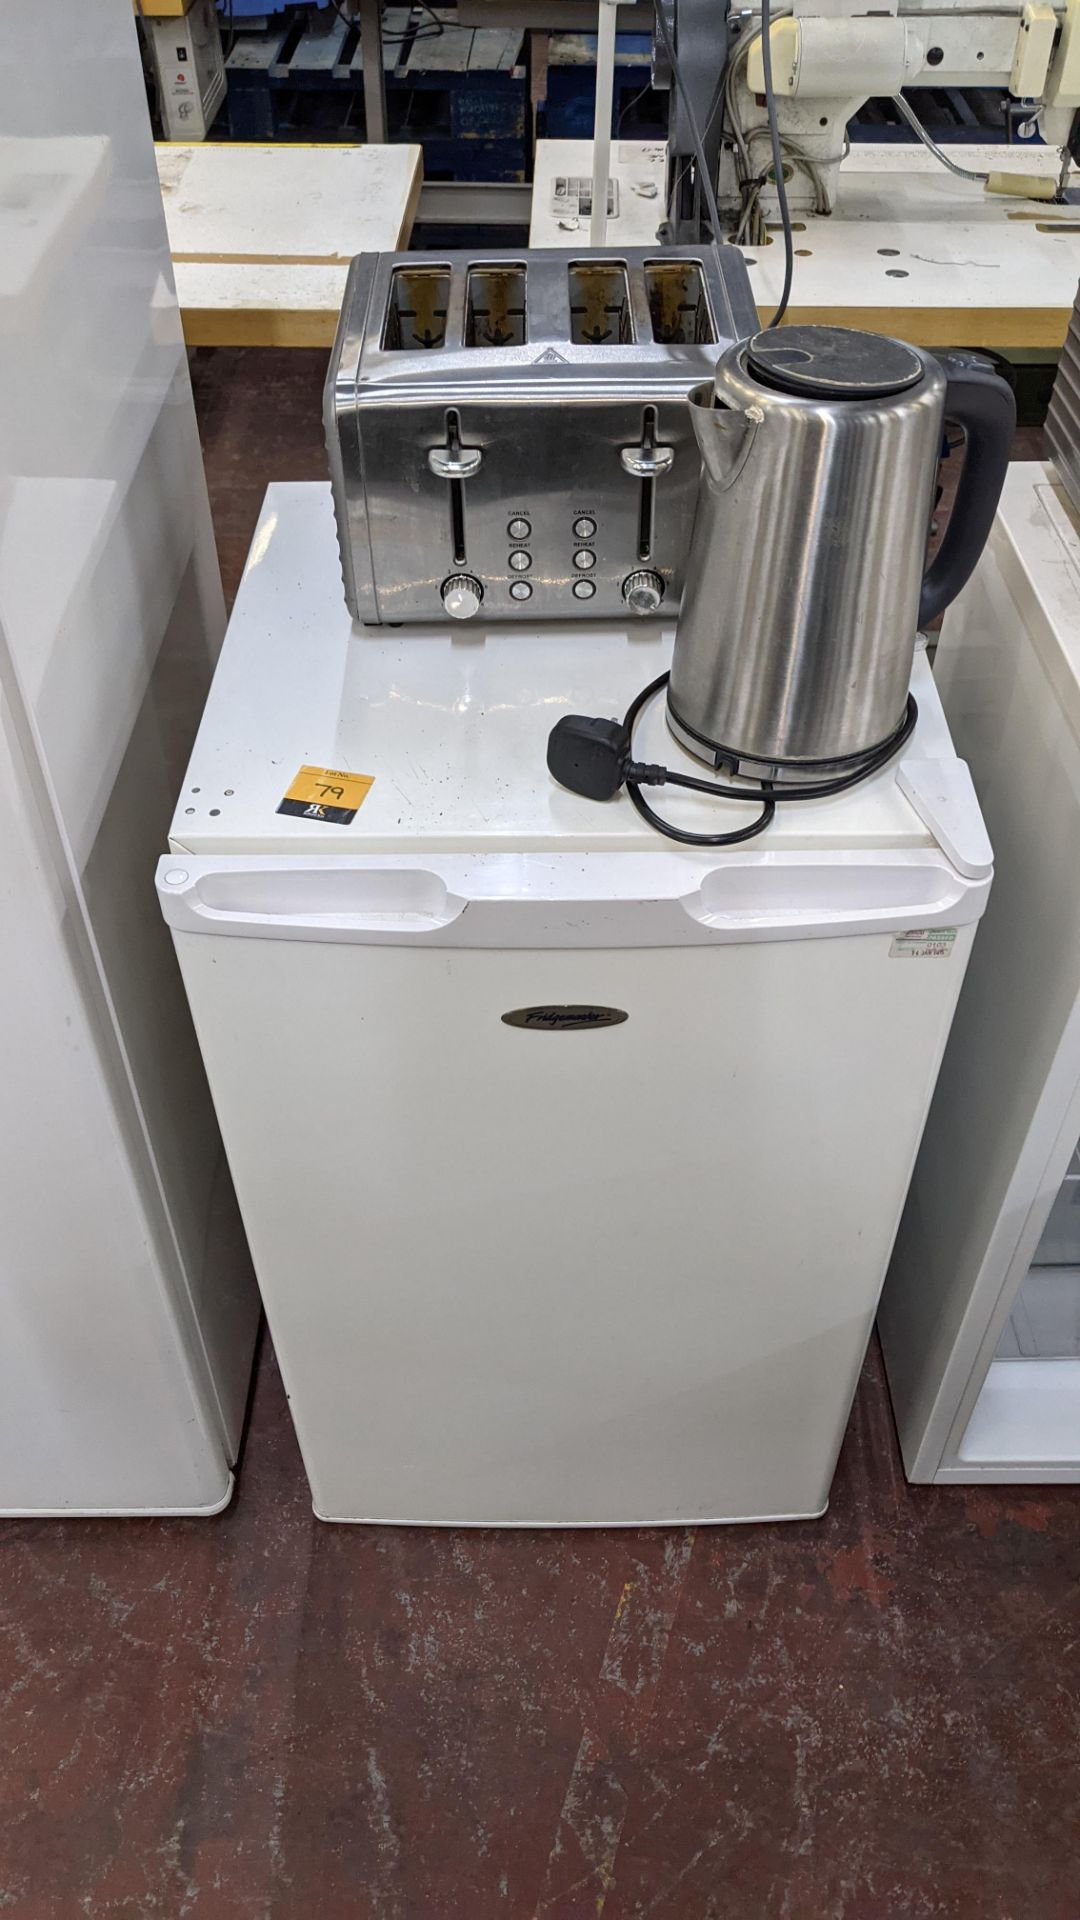 Domestic appliance lot comprising counter height fridge (incorporating freezer section) plus cordles